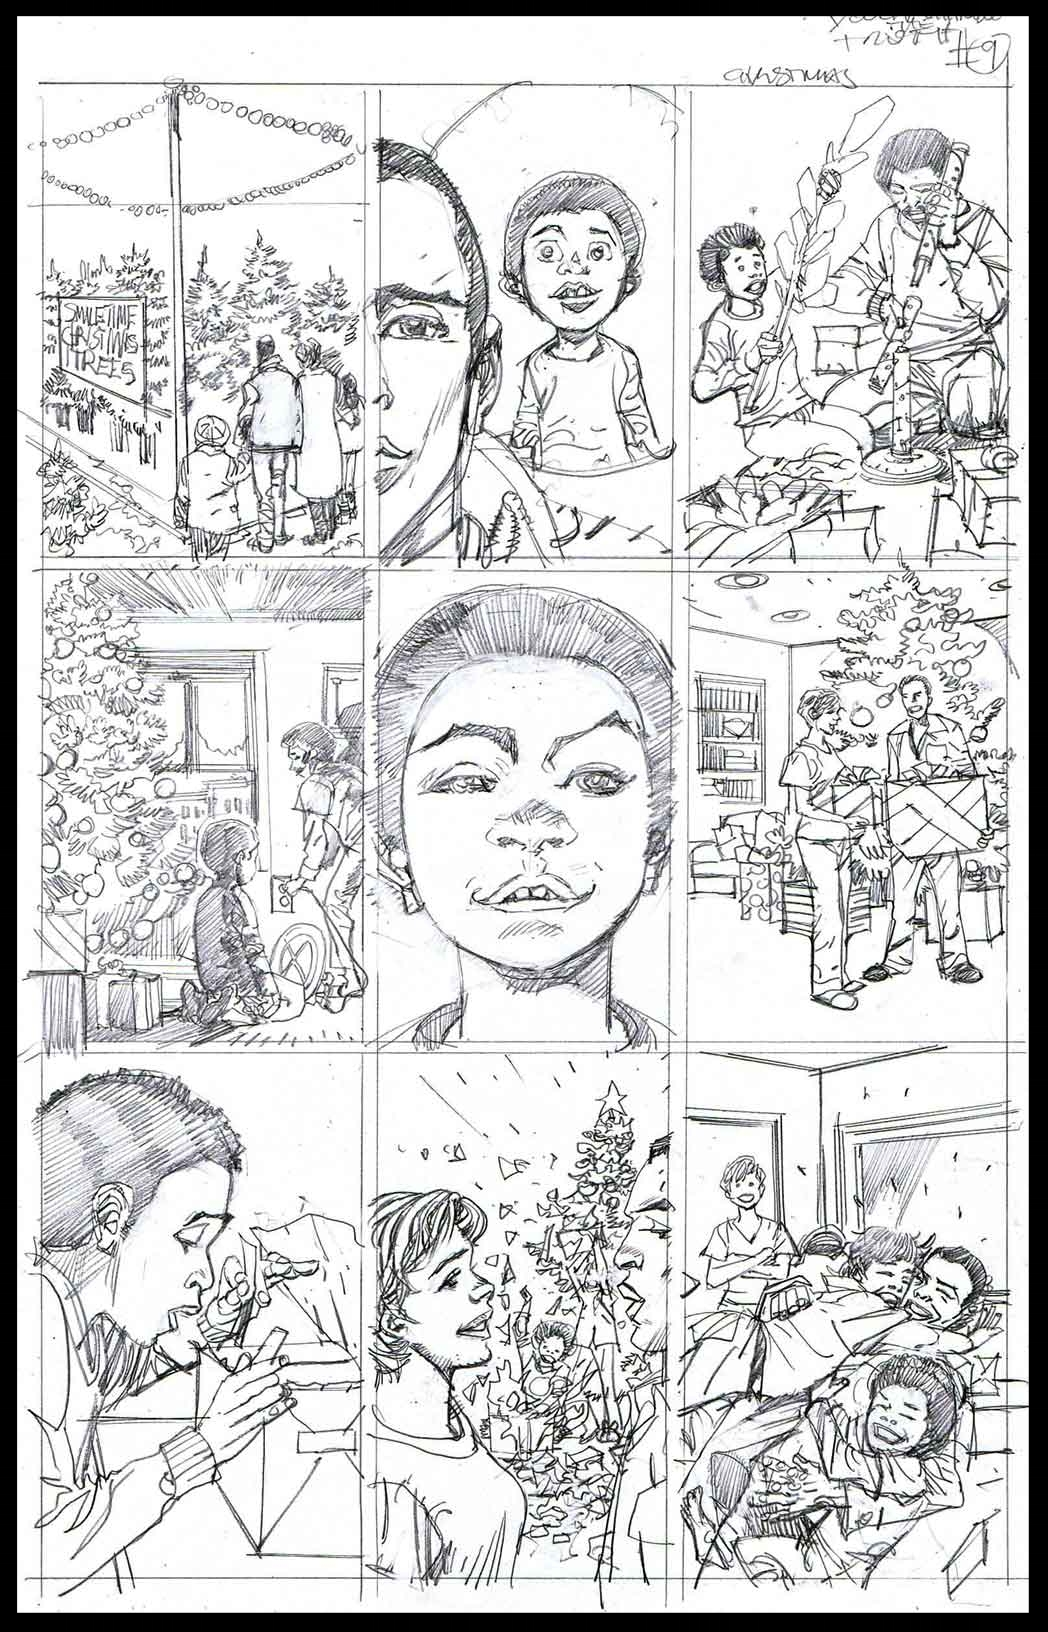 You Can't Handle The Truth #9 - Monthly Strip for Ebony - Pencils